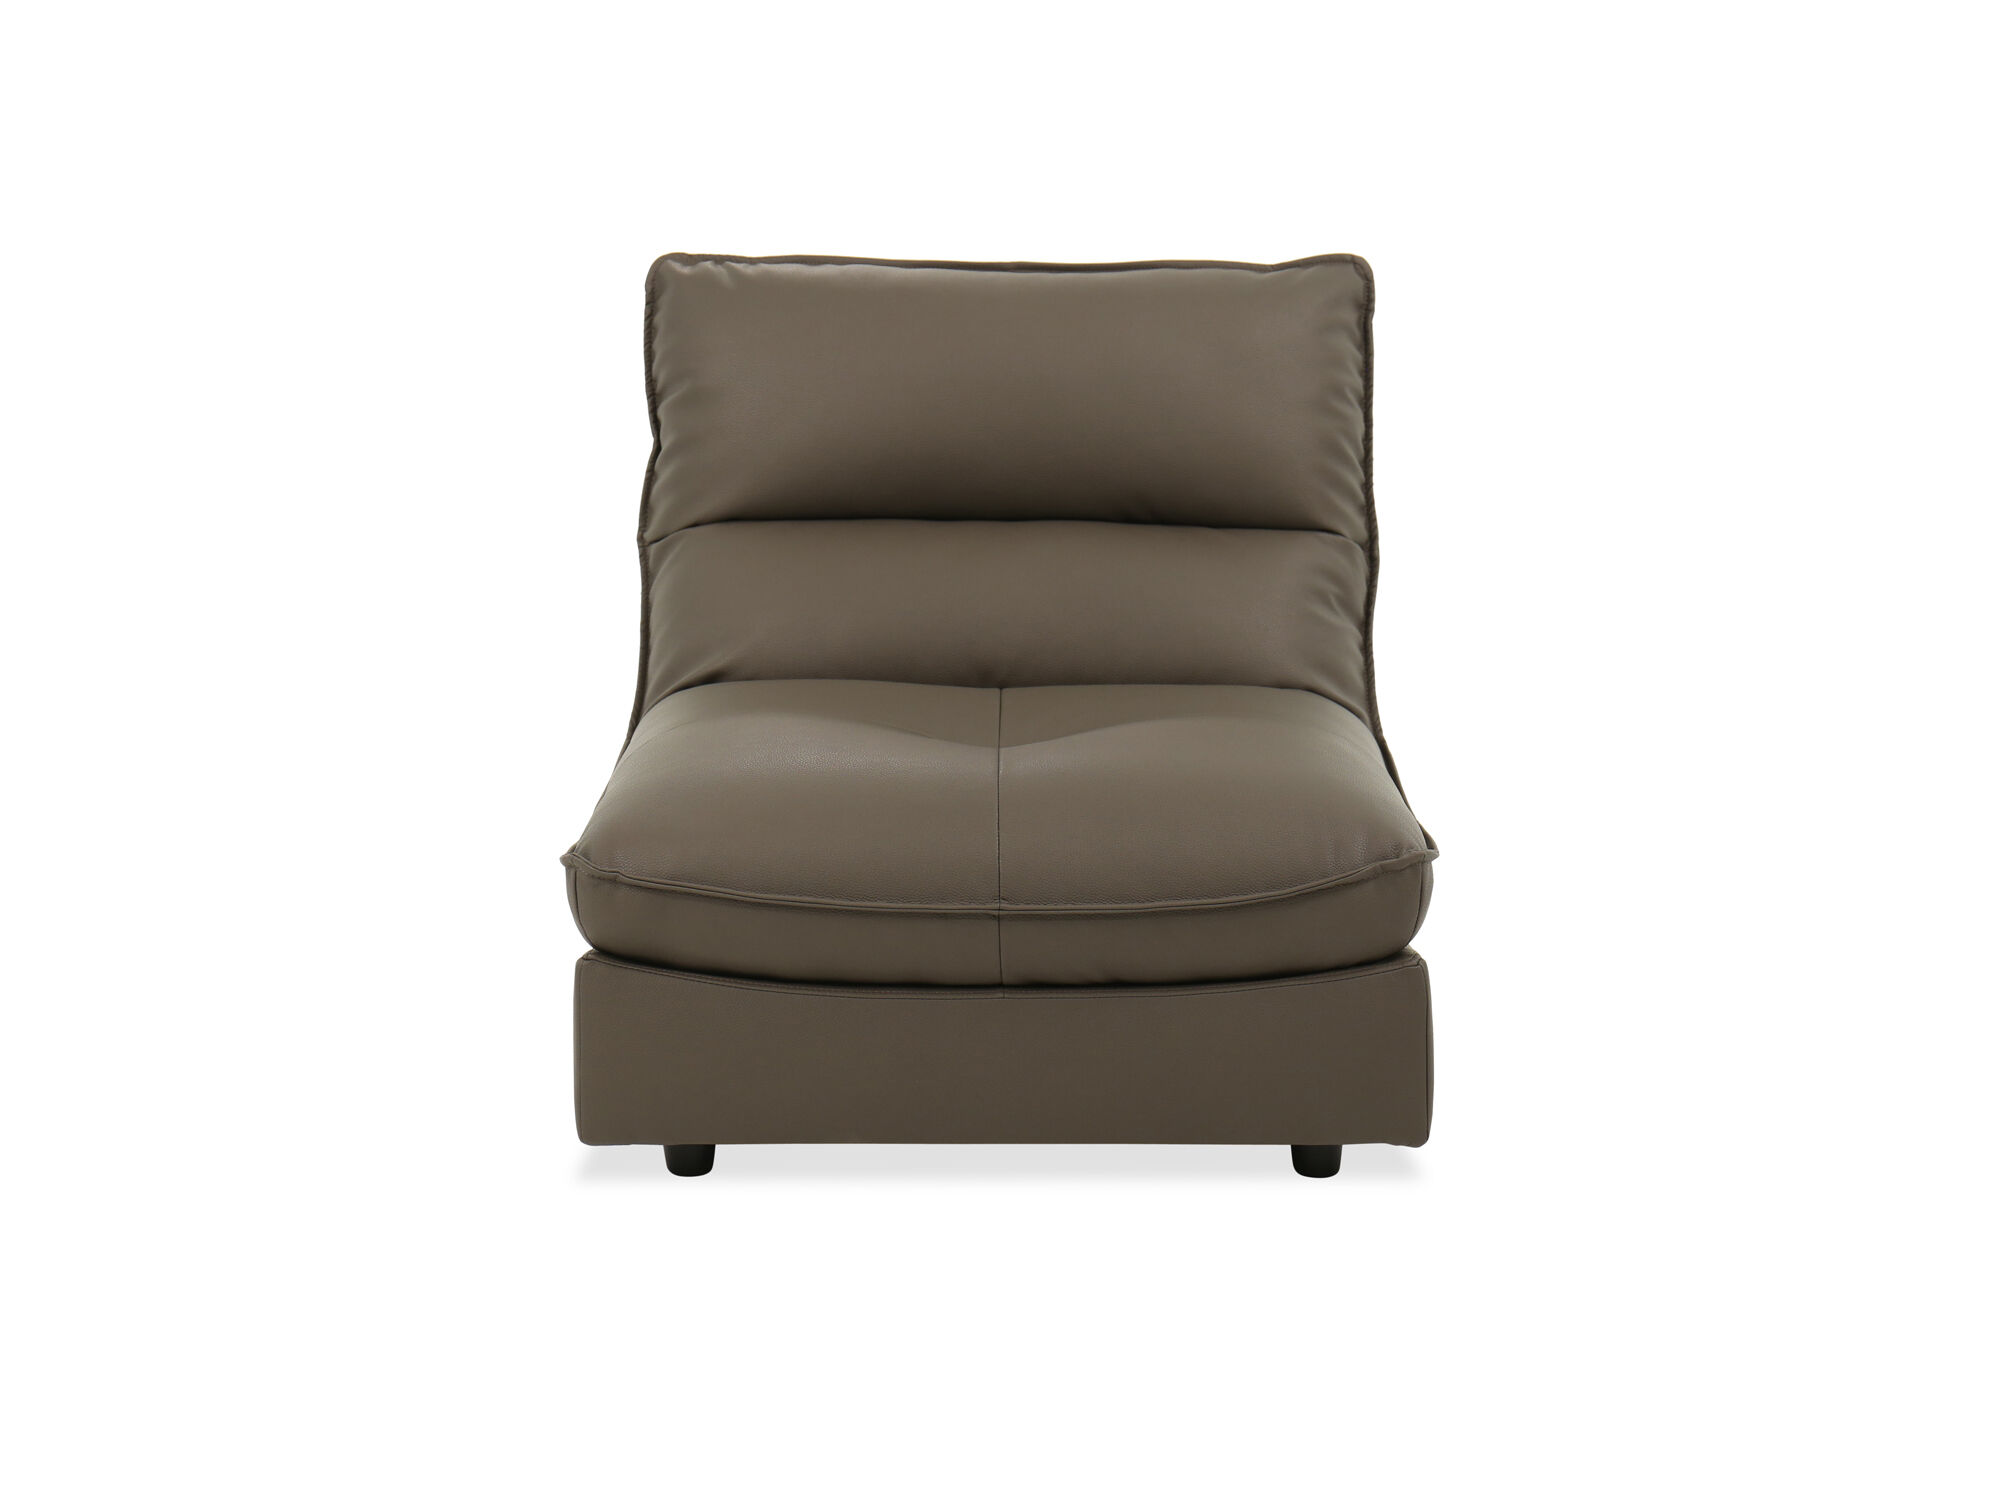 Smooth Leather Displays A Relaxing Gray Tone That Infuses A Warm, Feel Good  Vibe To Any Décor. Updated With Welted Edges, This Casual Armless Chair Is  A ...